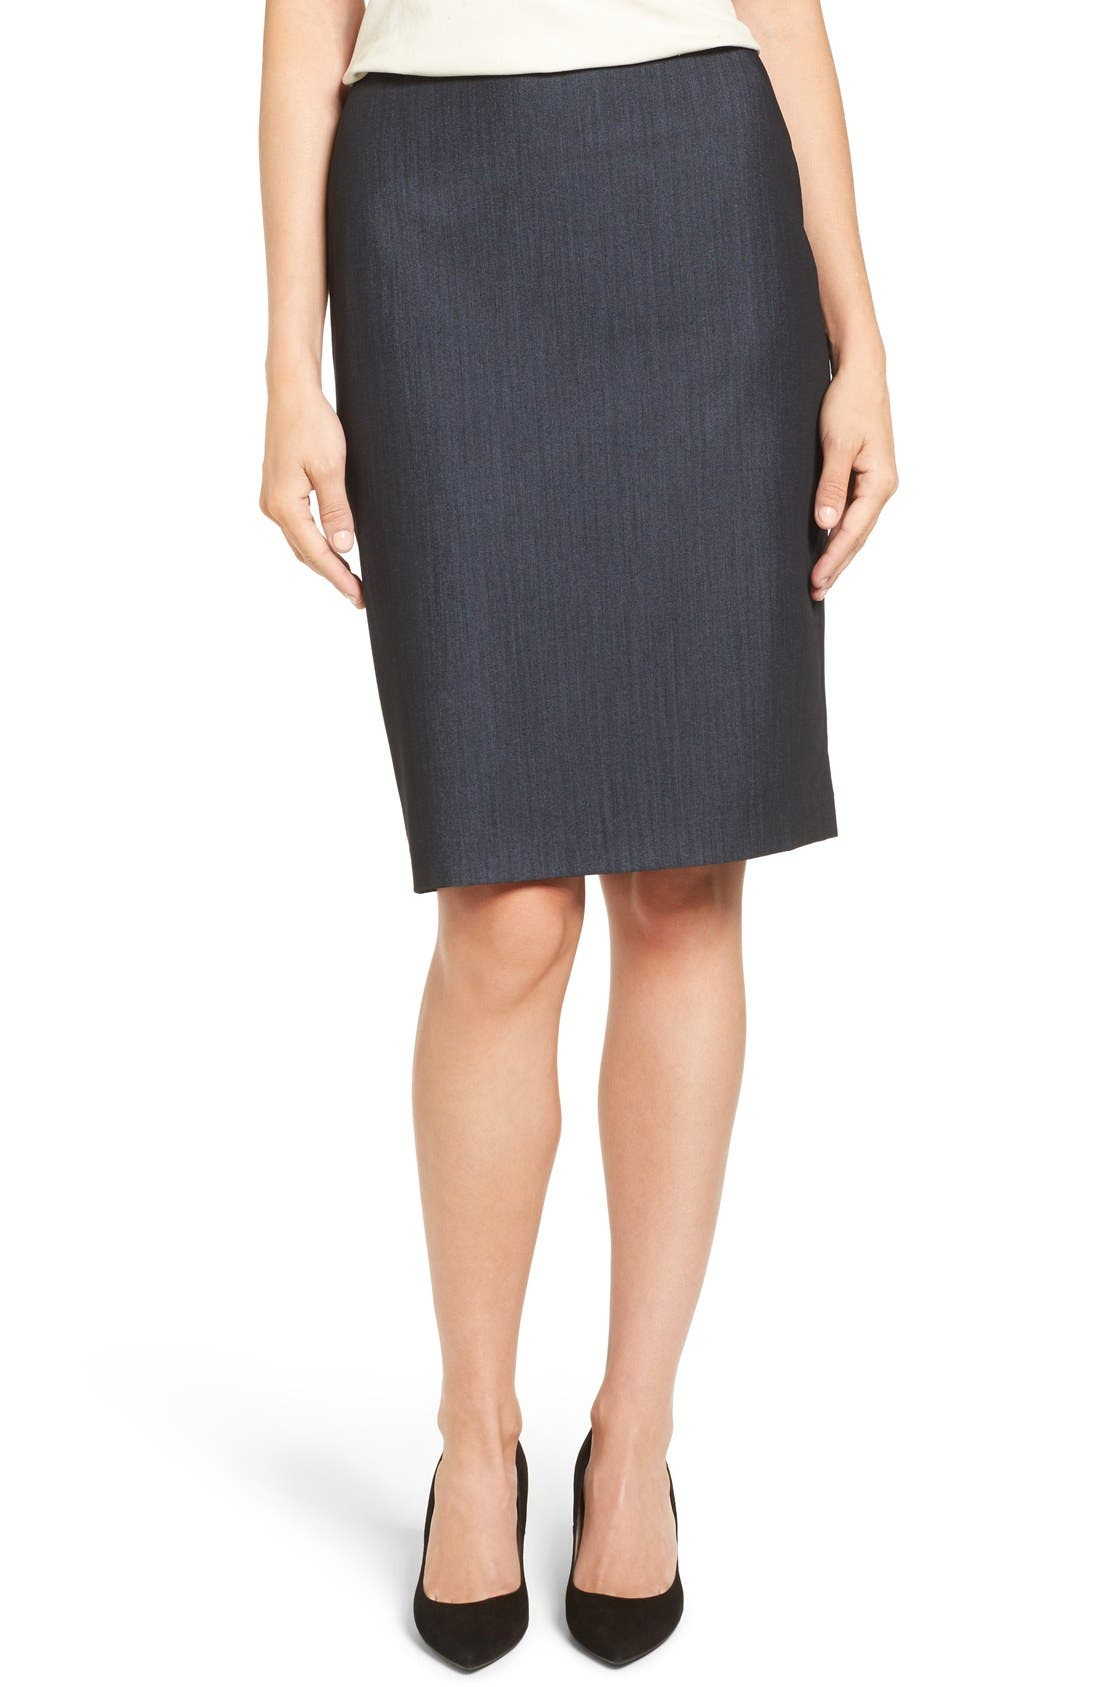 Alternate Image 1 Selected - Anne Klein Stretch Woven Suit Skirt